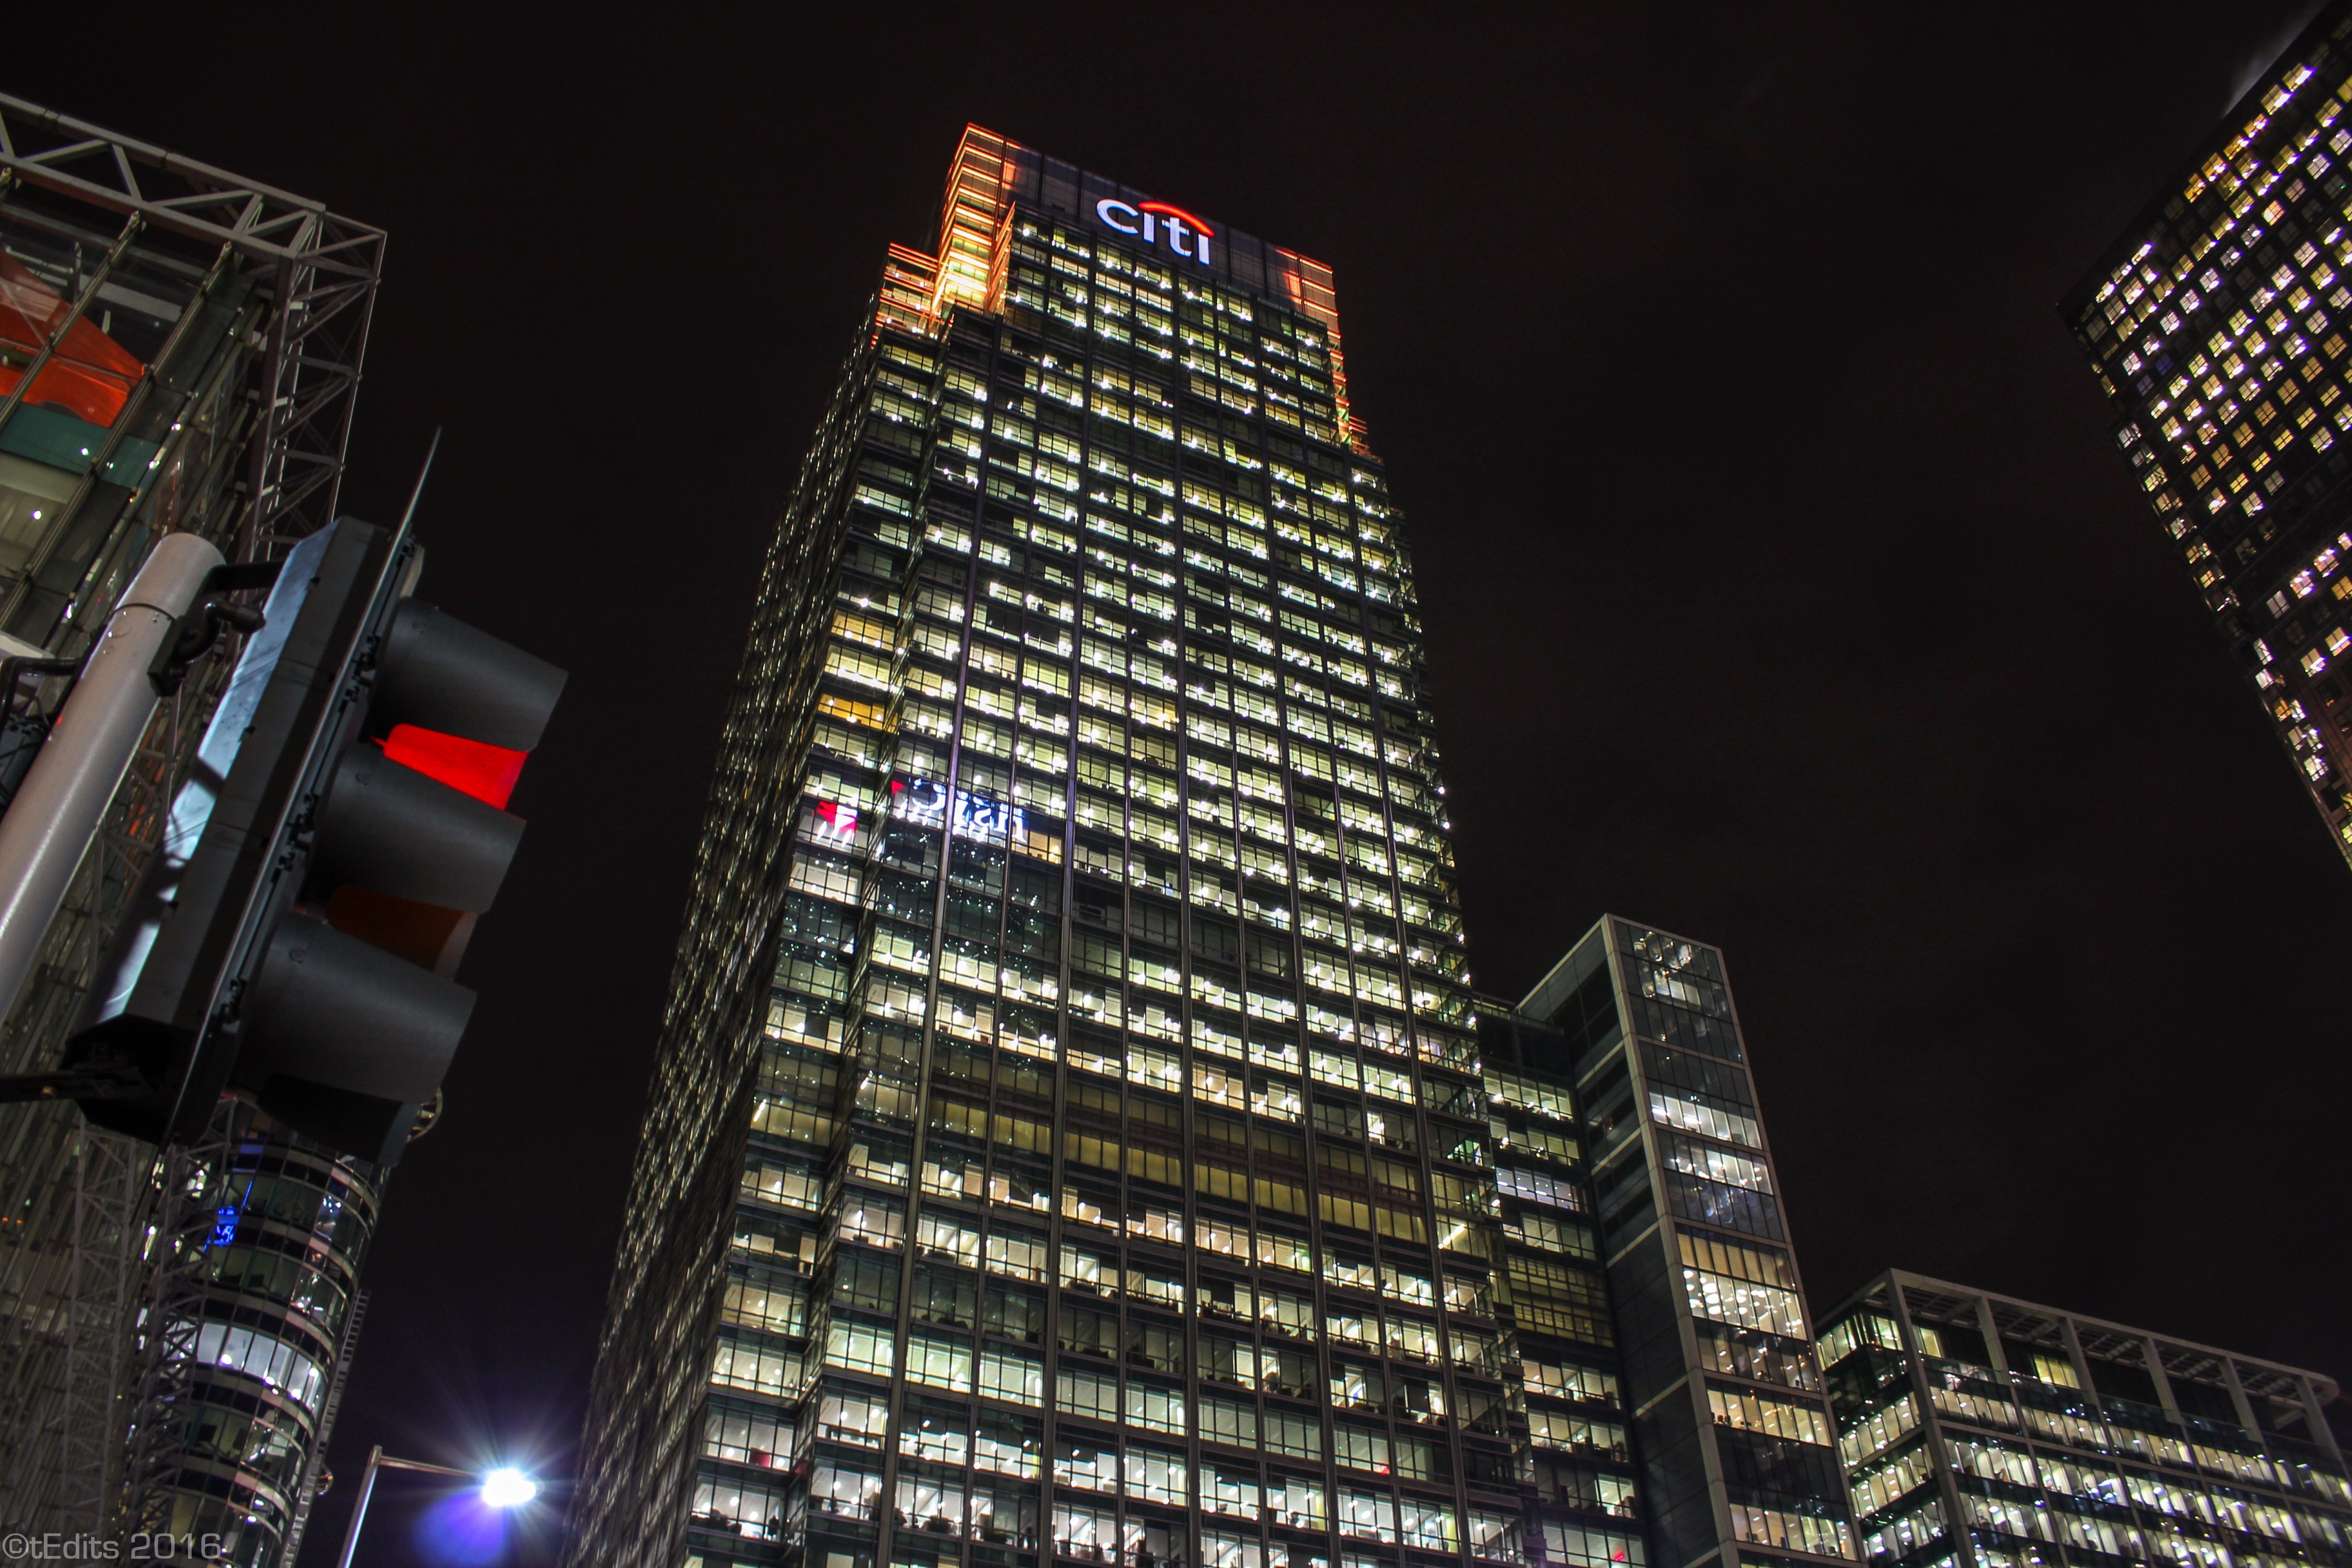 Canary Wharf Winter Lights 2016 - Citi Bank